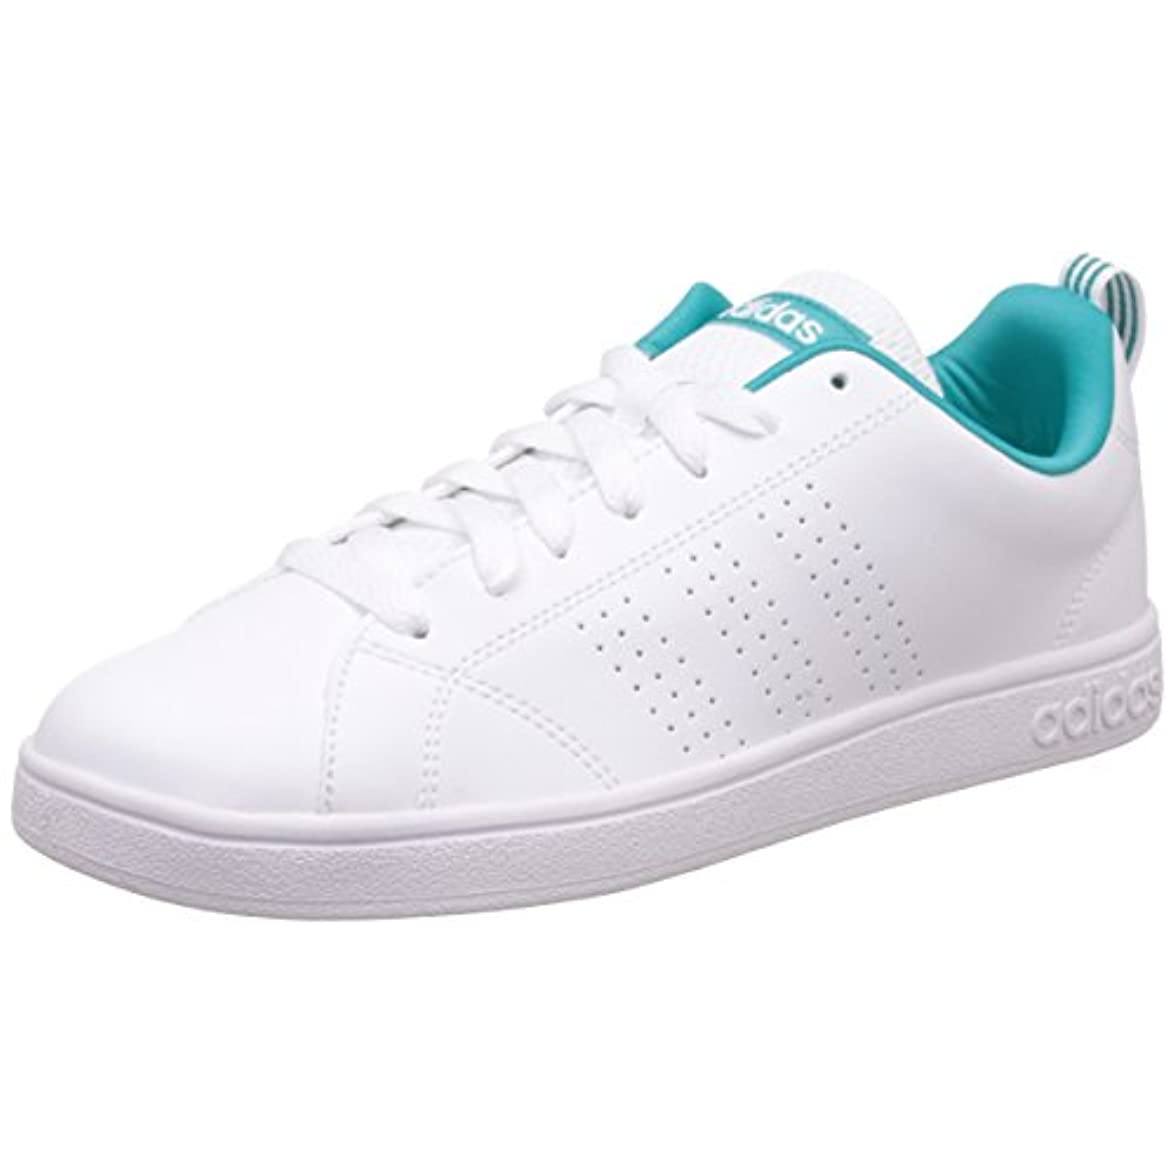 Adidas - Advantage Clean Vs W Scarpe Sportive Donna